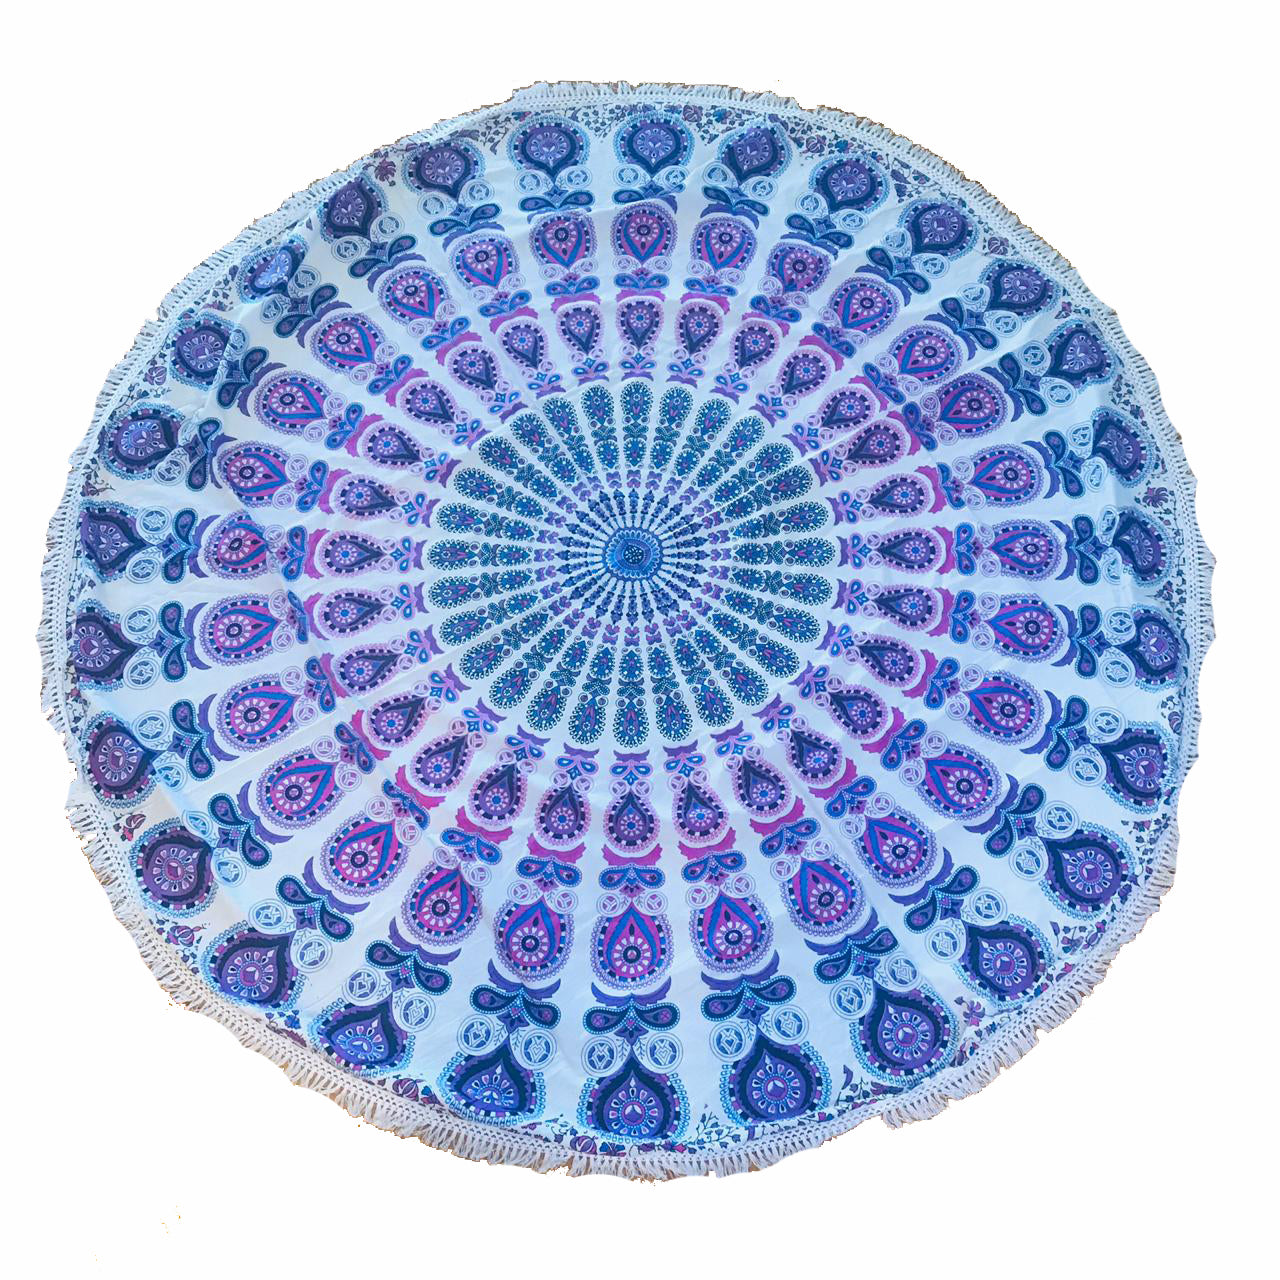 Pareo - Cubre cama mandala  Pink and Purple Design